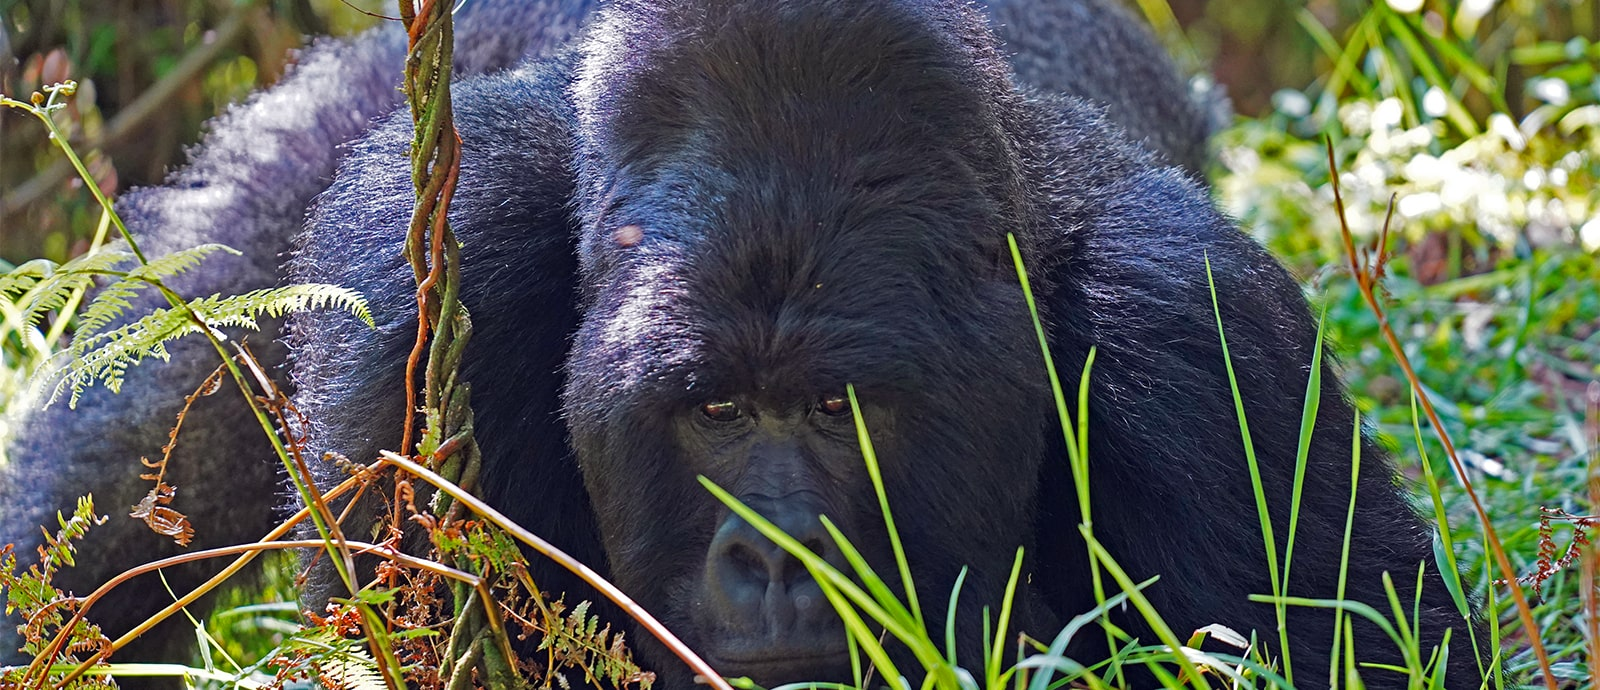 Gorilla lying down